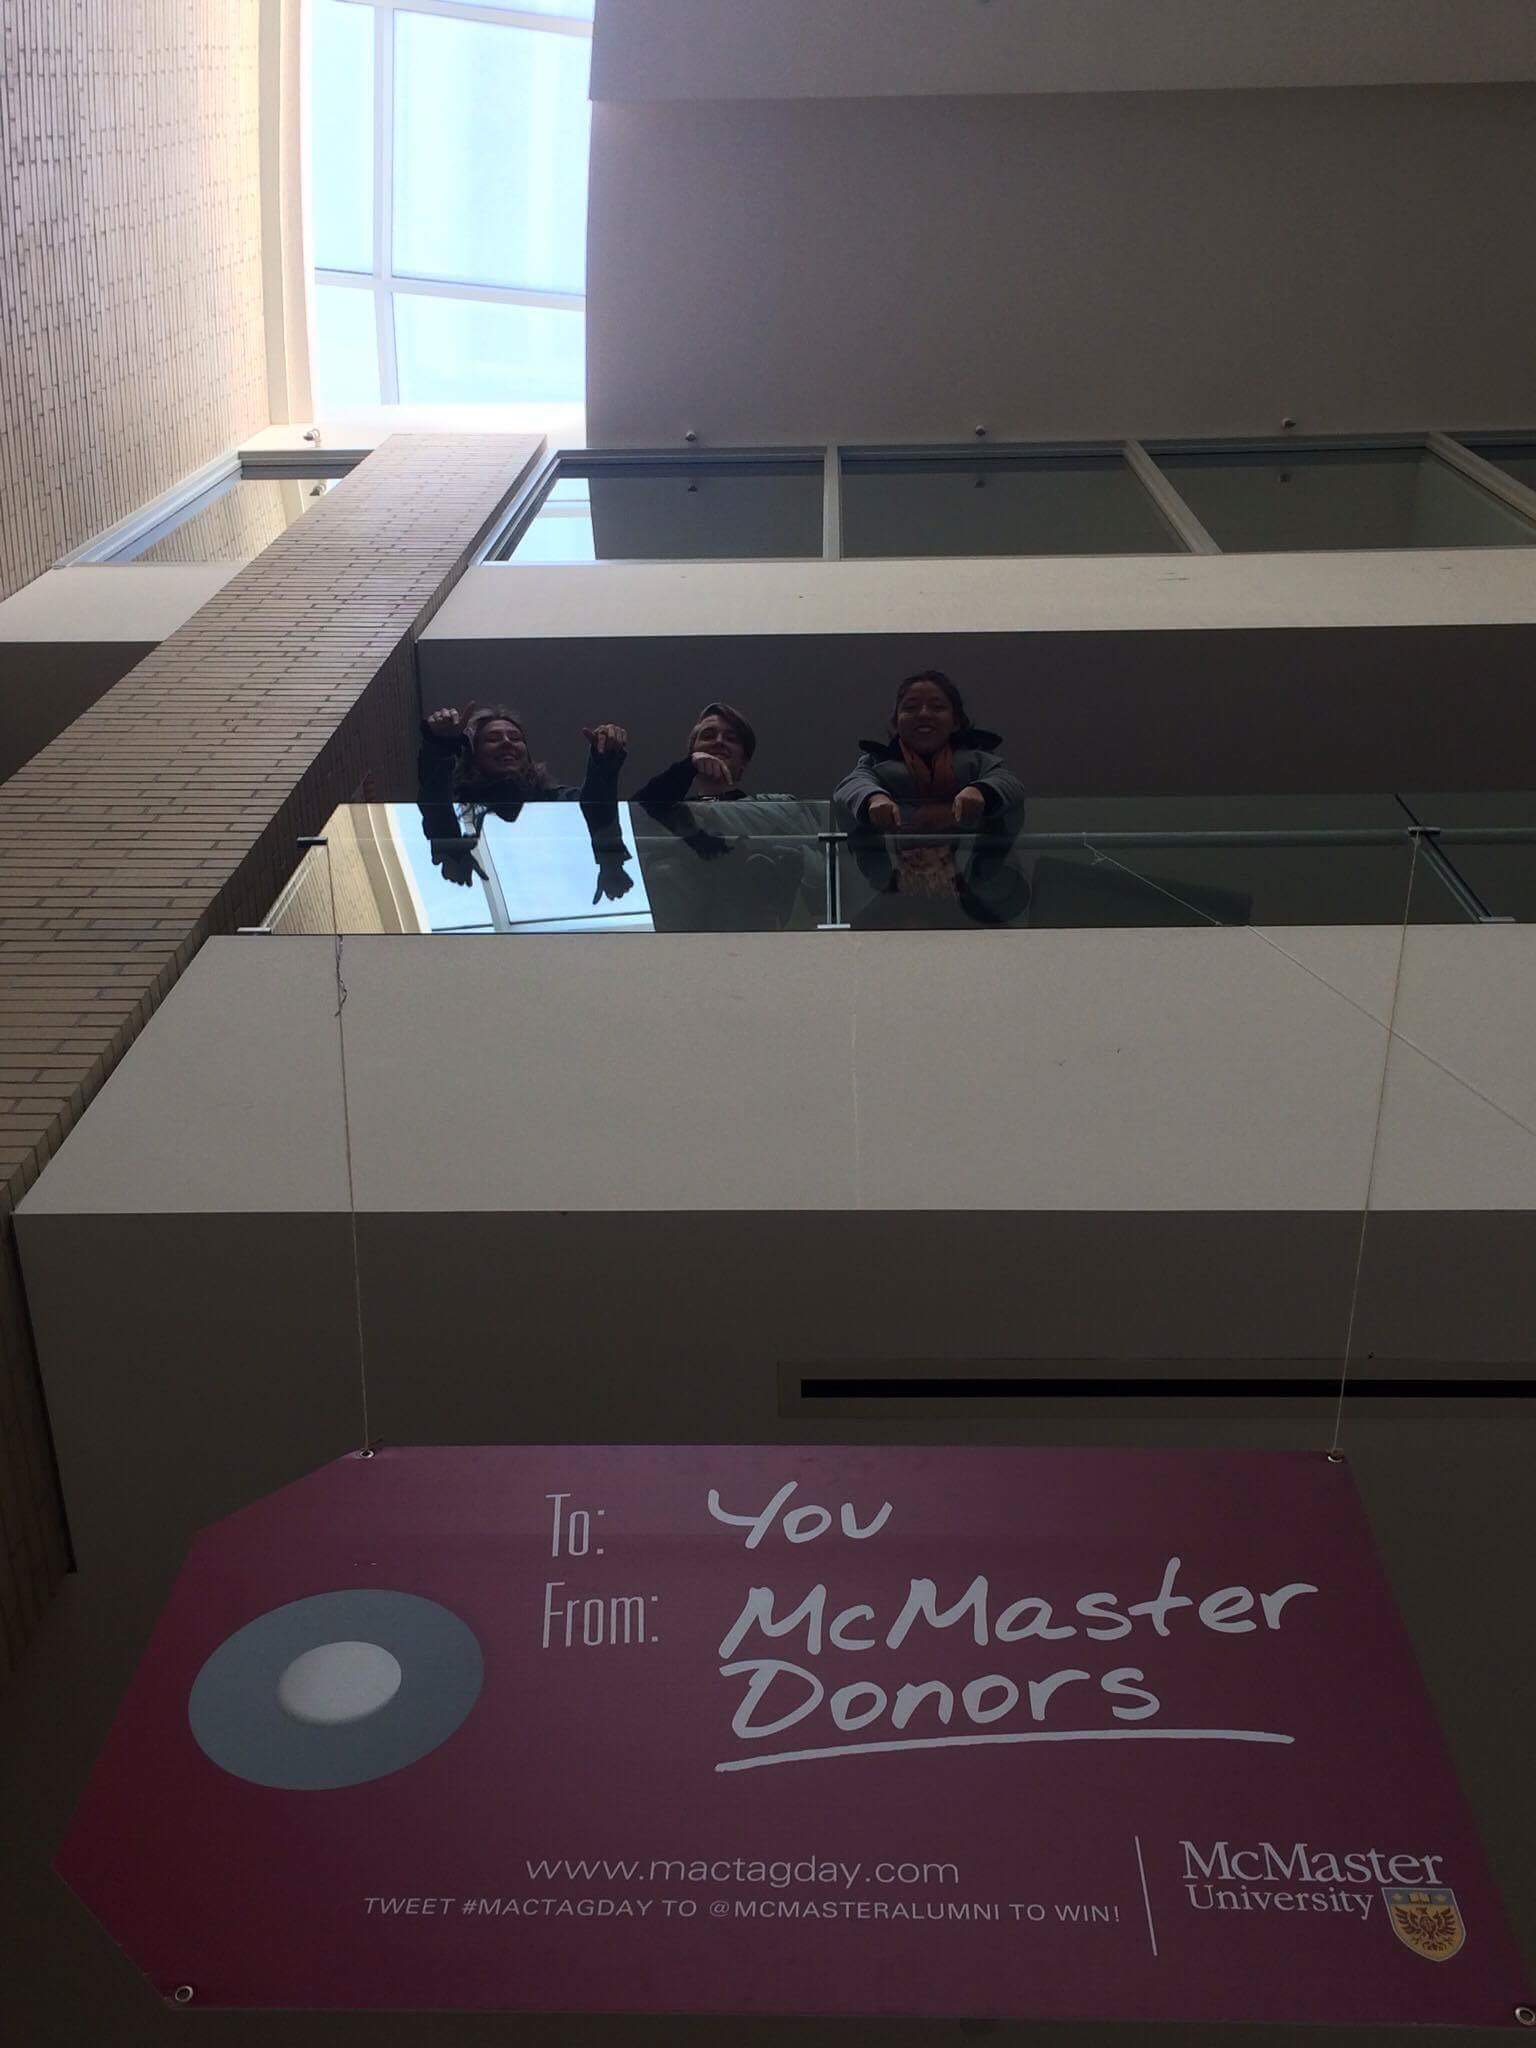 thank you, McMaster alumni donors for helping McMaster students financially. It is very much appreciated it.  @McMasterAlumni #mactagday https://t.co/Qpw891GJEA